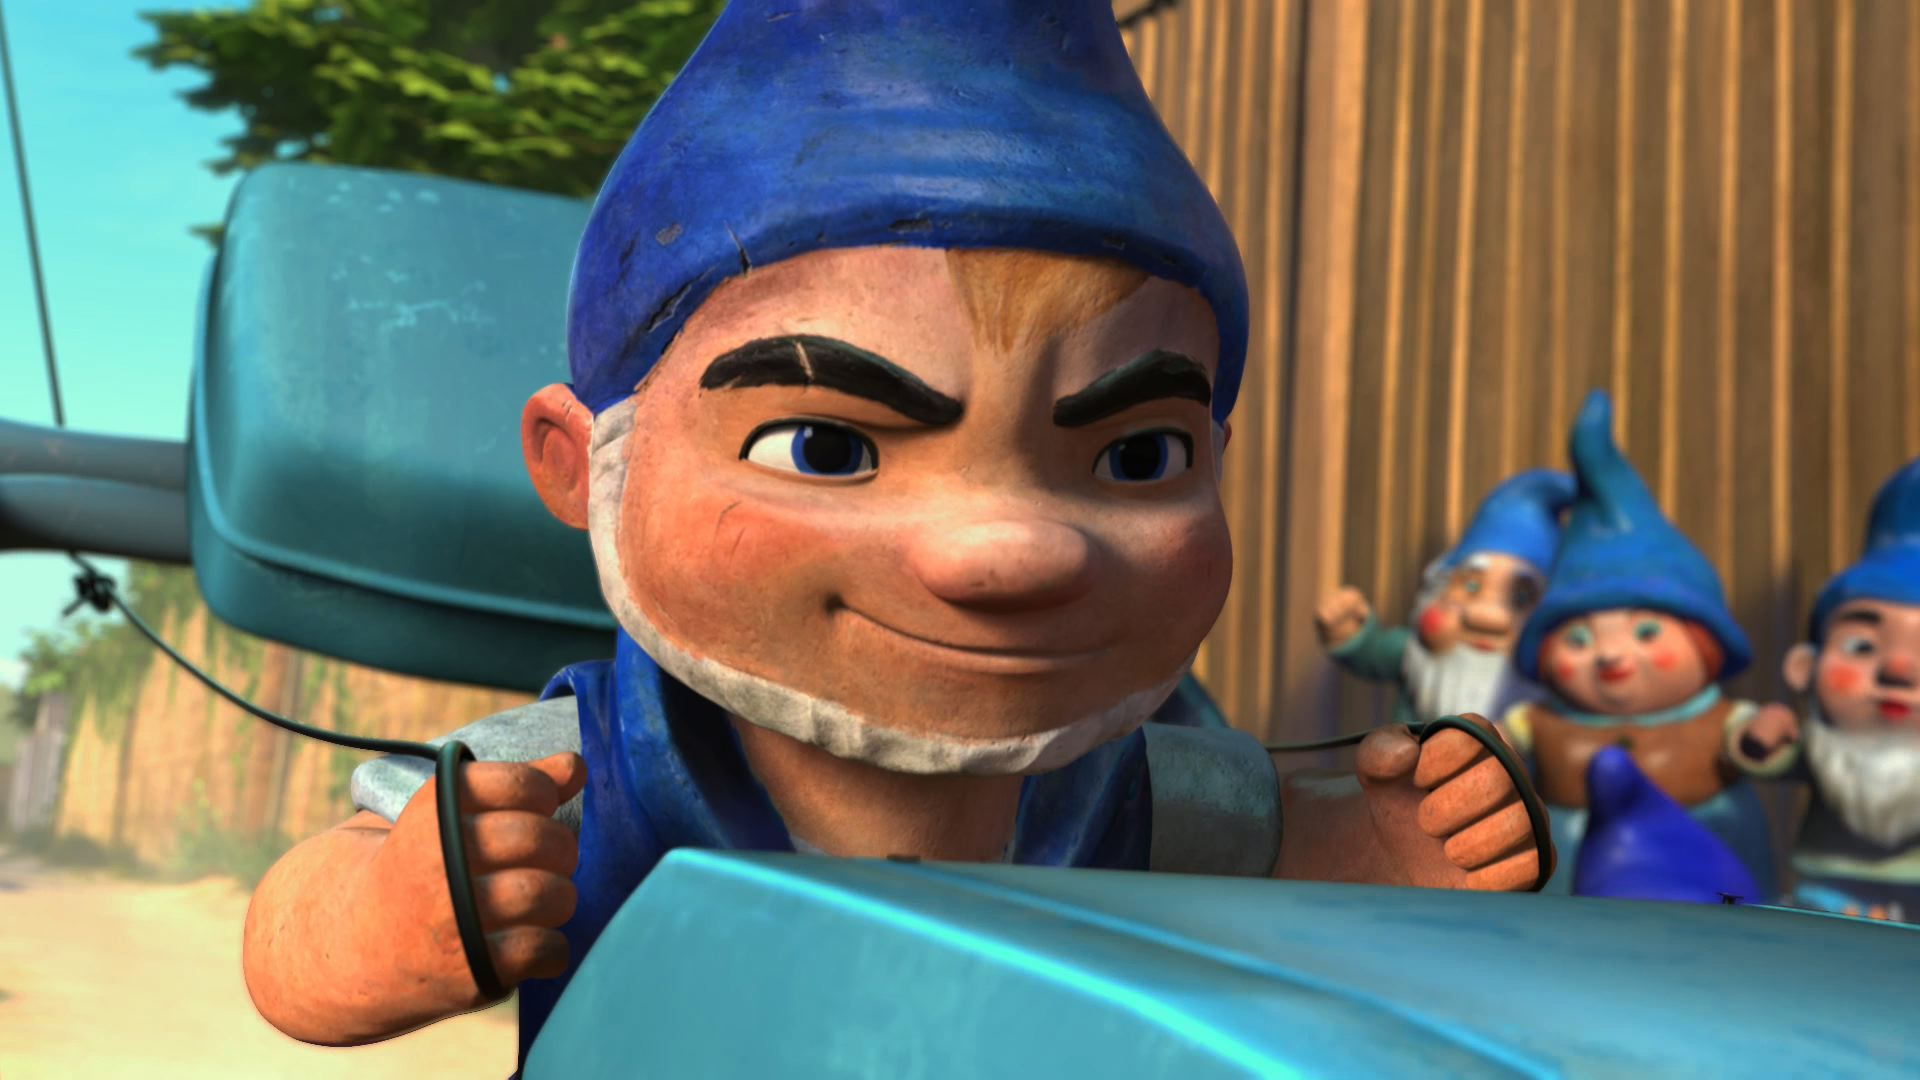 Gnomeo Lawn Mower Racer From Gnomeo And Juliet Desktop